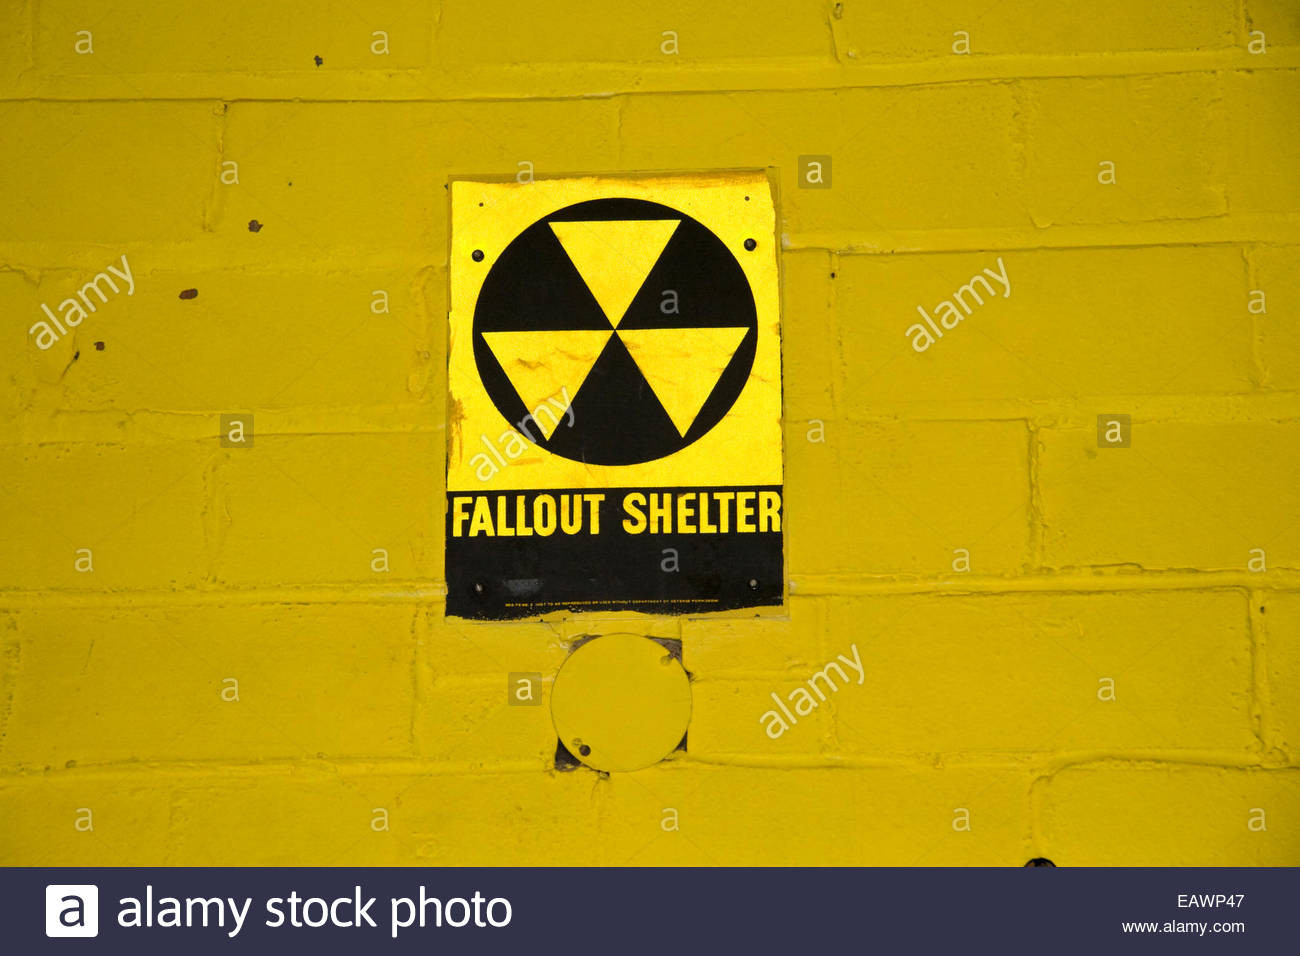 Fallout Shelter Sign Stock Photos Fallout Shelter Sign Stock